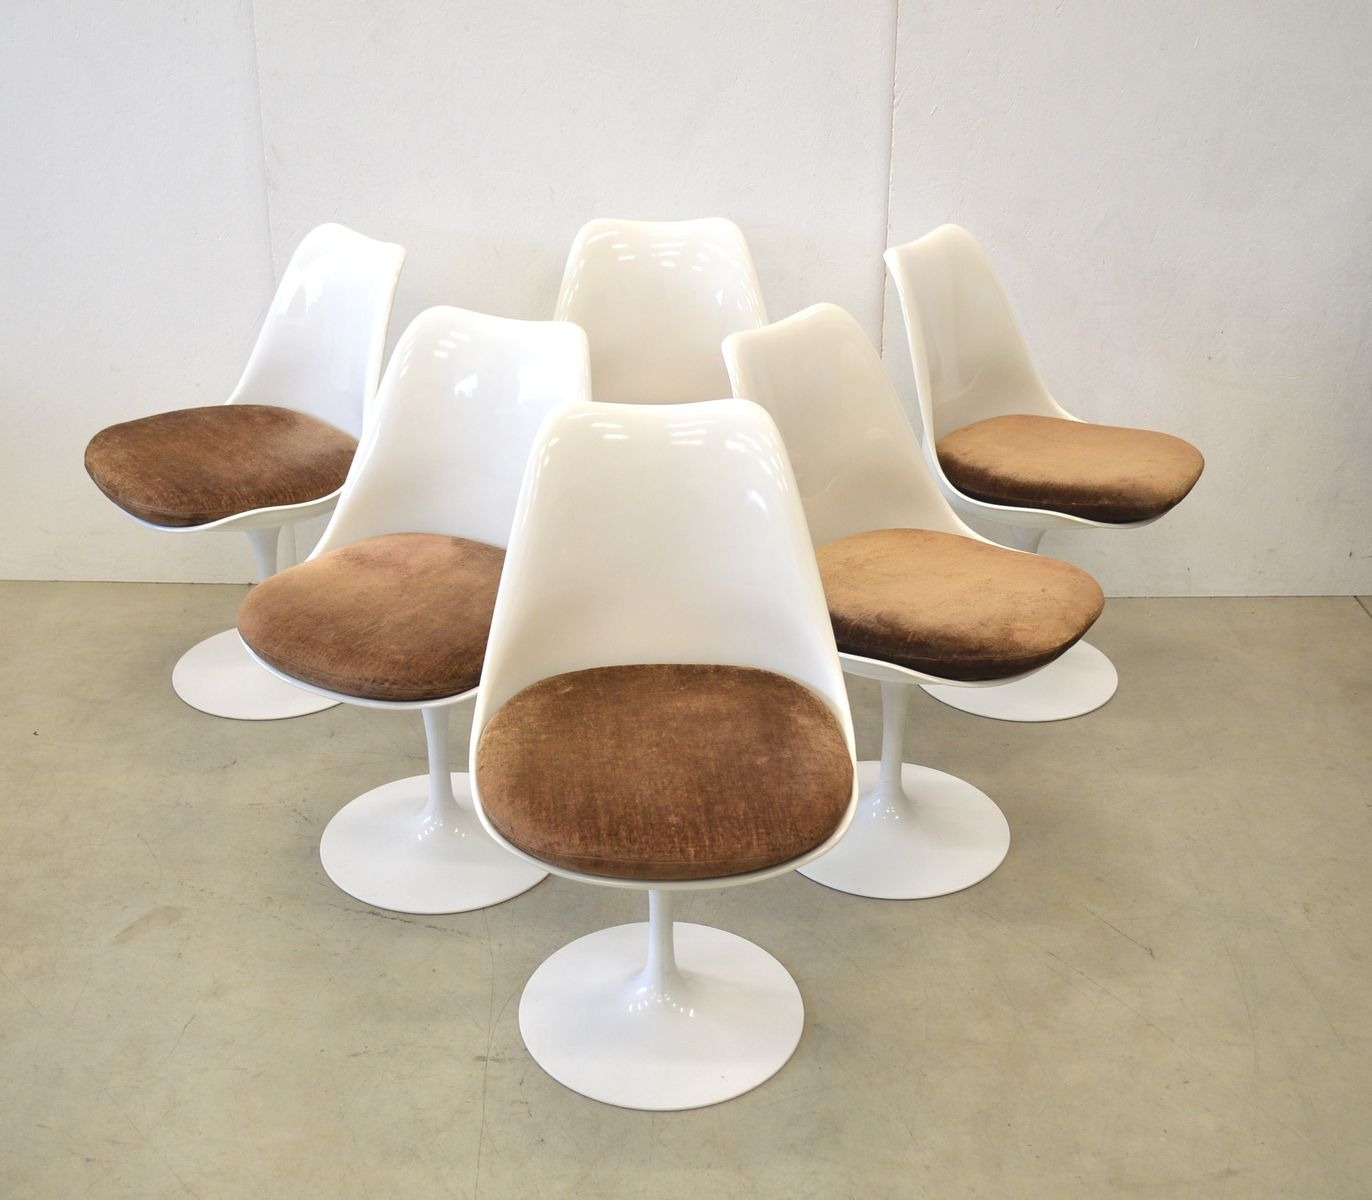 Marble dining table 6 tulip chairs by eero saarinen for knoll international 1970s for sale at - Tulip chairs for sale ...